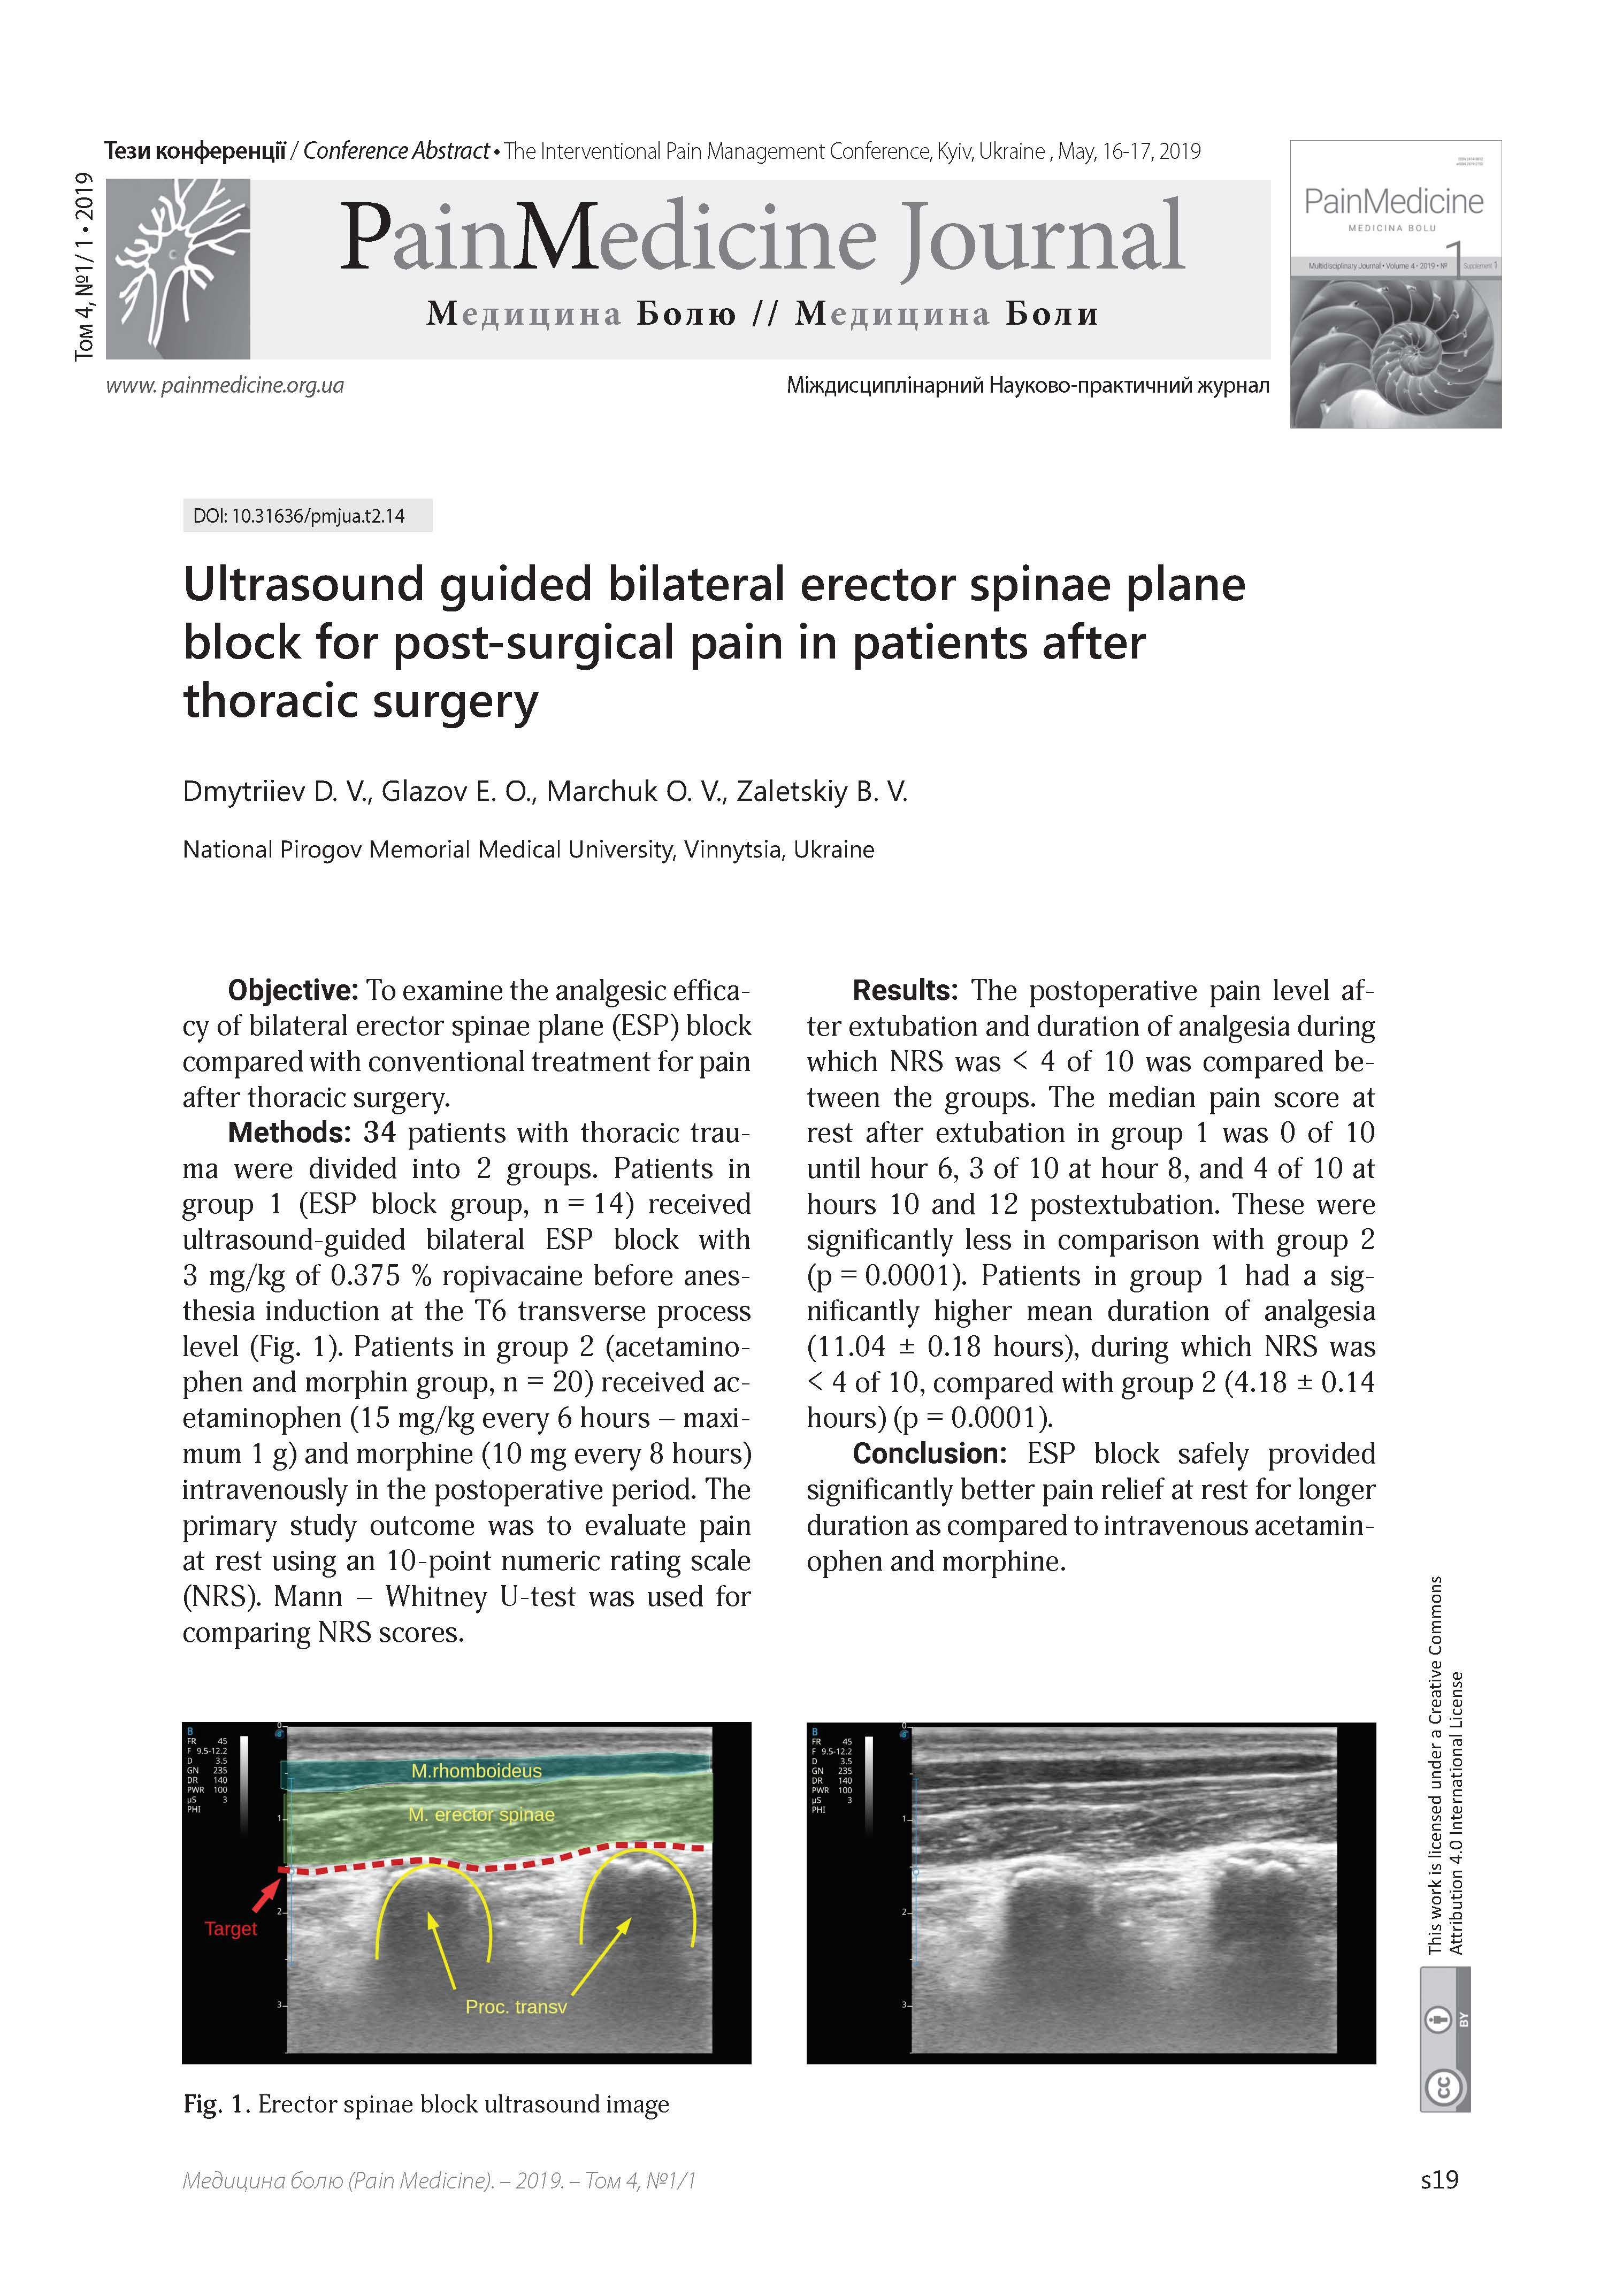 Ultrasound guided bilateral erector spinae plane block for post-surgical pain in patients after thoracic surgery